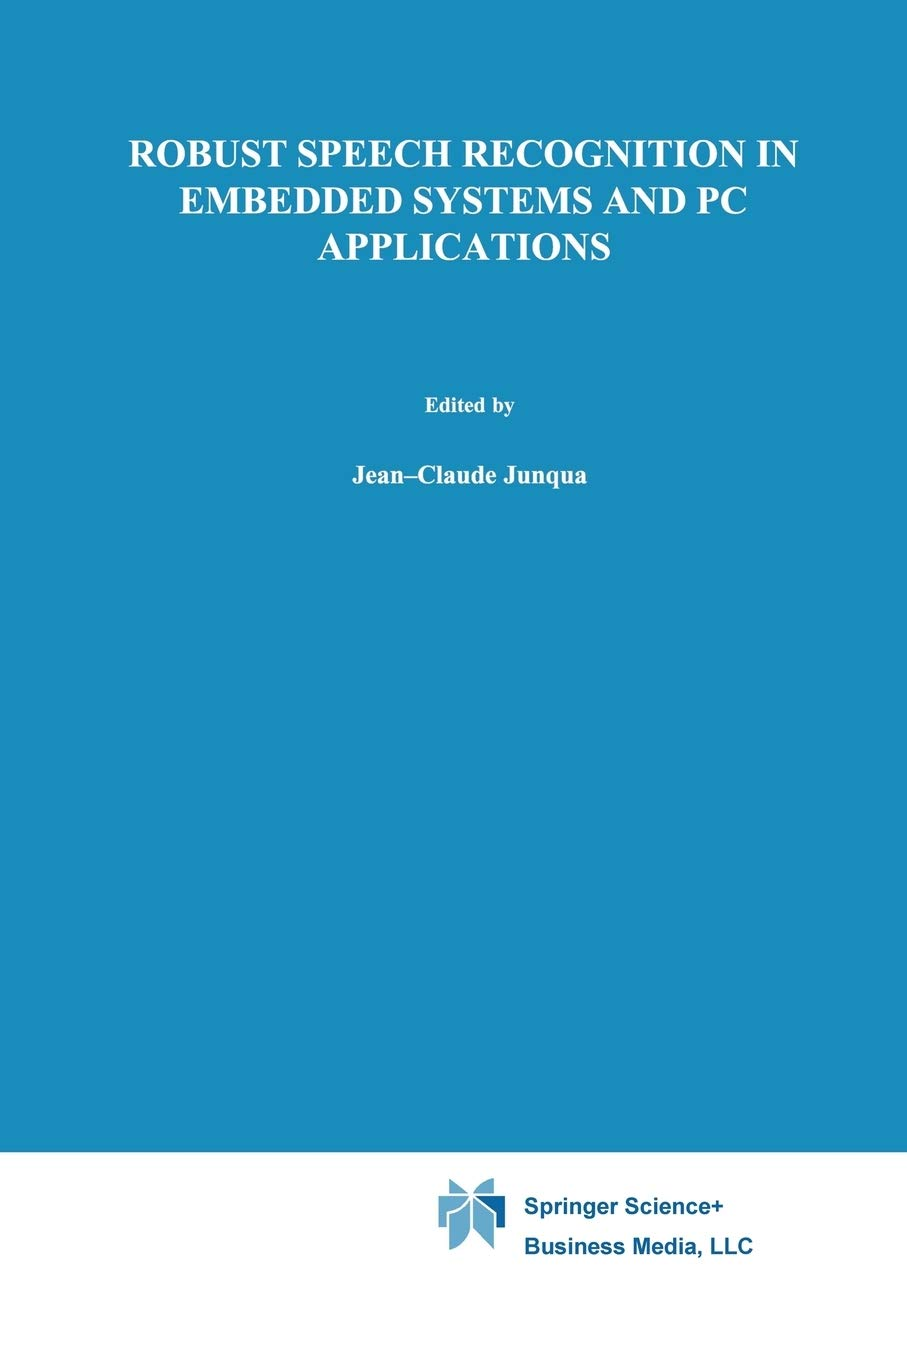 Robust Speech Recognition in Embedded Systems and Pc Applications (The Springer International Series in Engineering and Computer Science (563), Band 563)